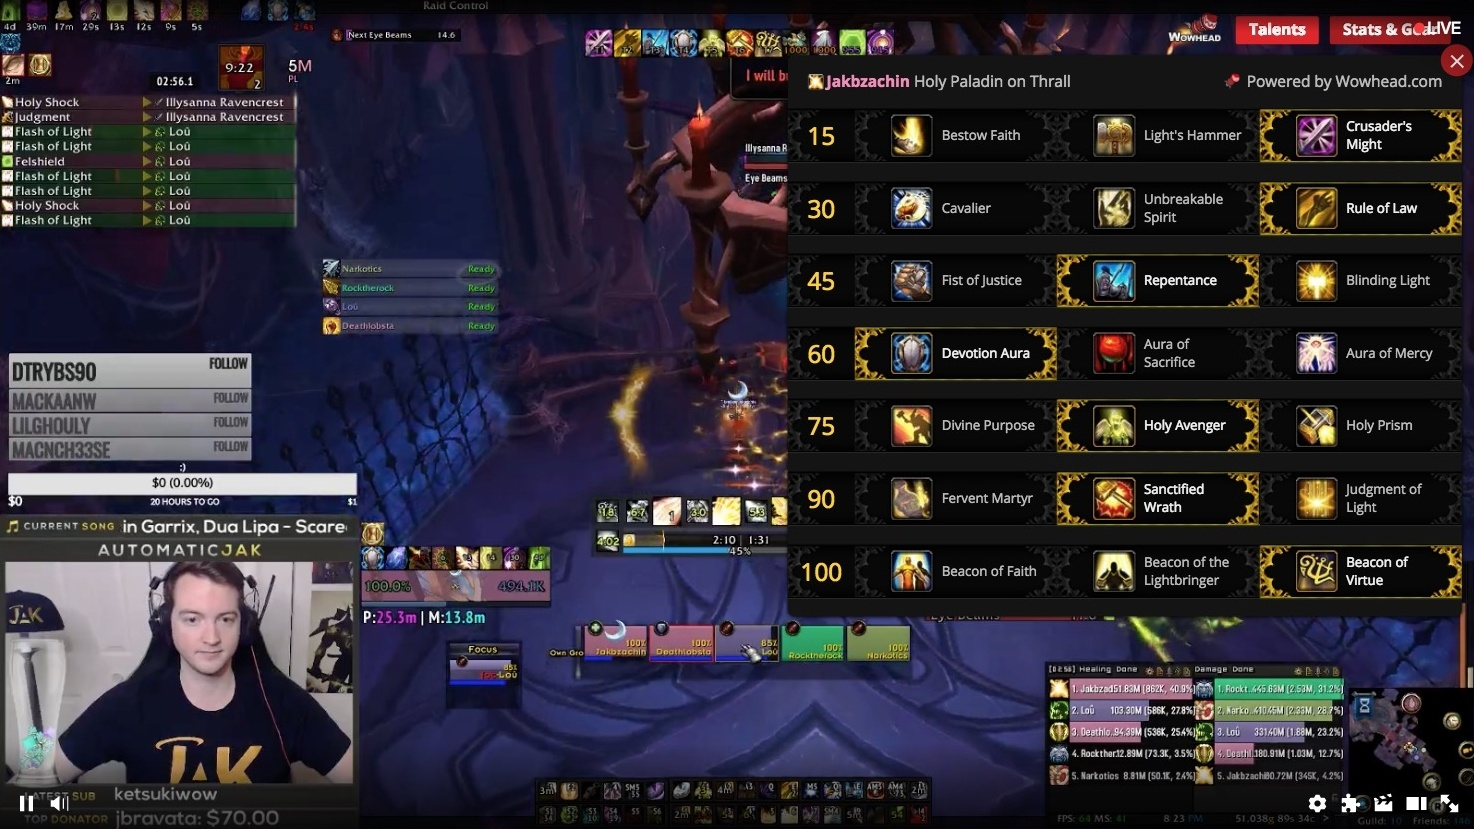 Wowhead's Twitch Extension Now Live - Talent and Gear Overlay for